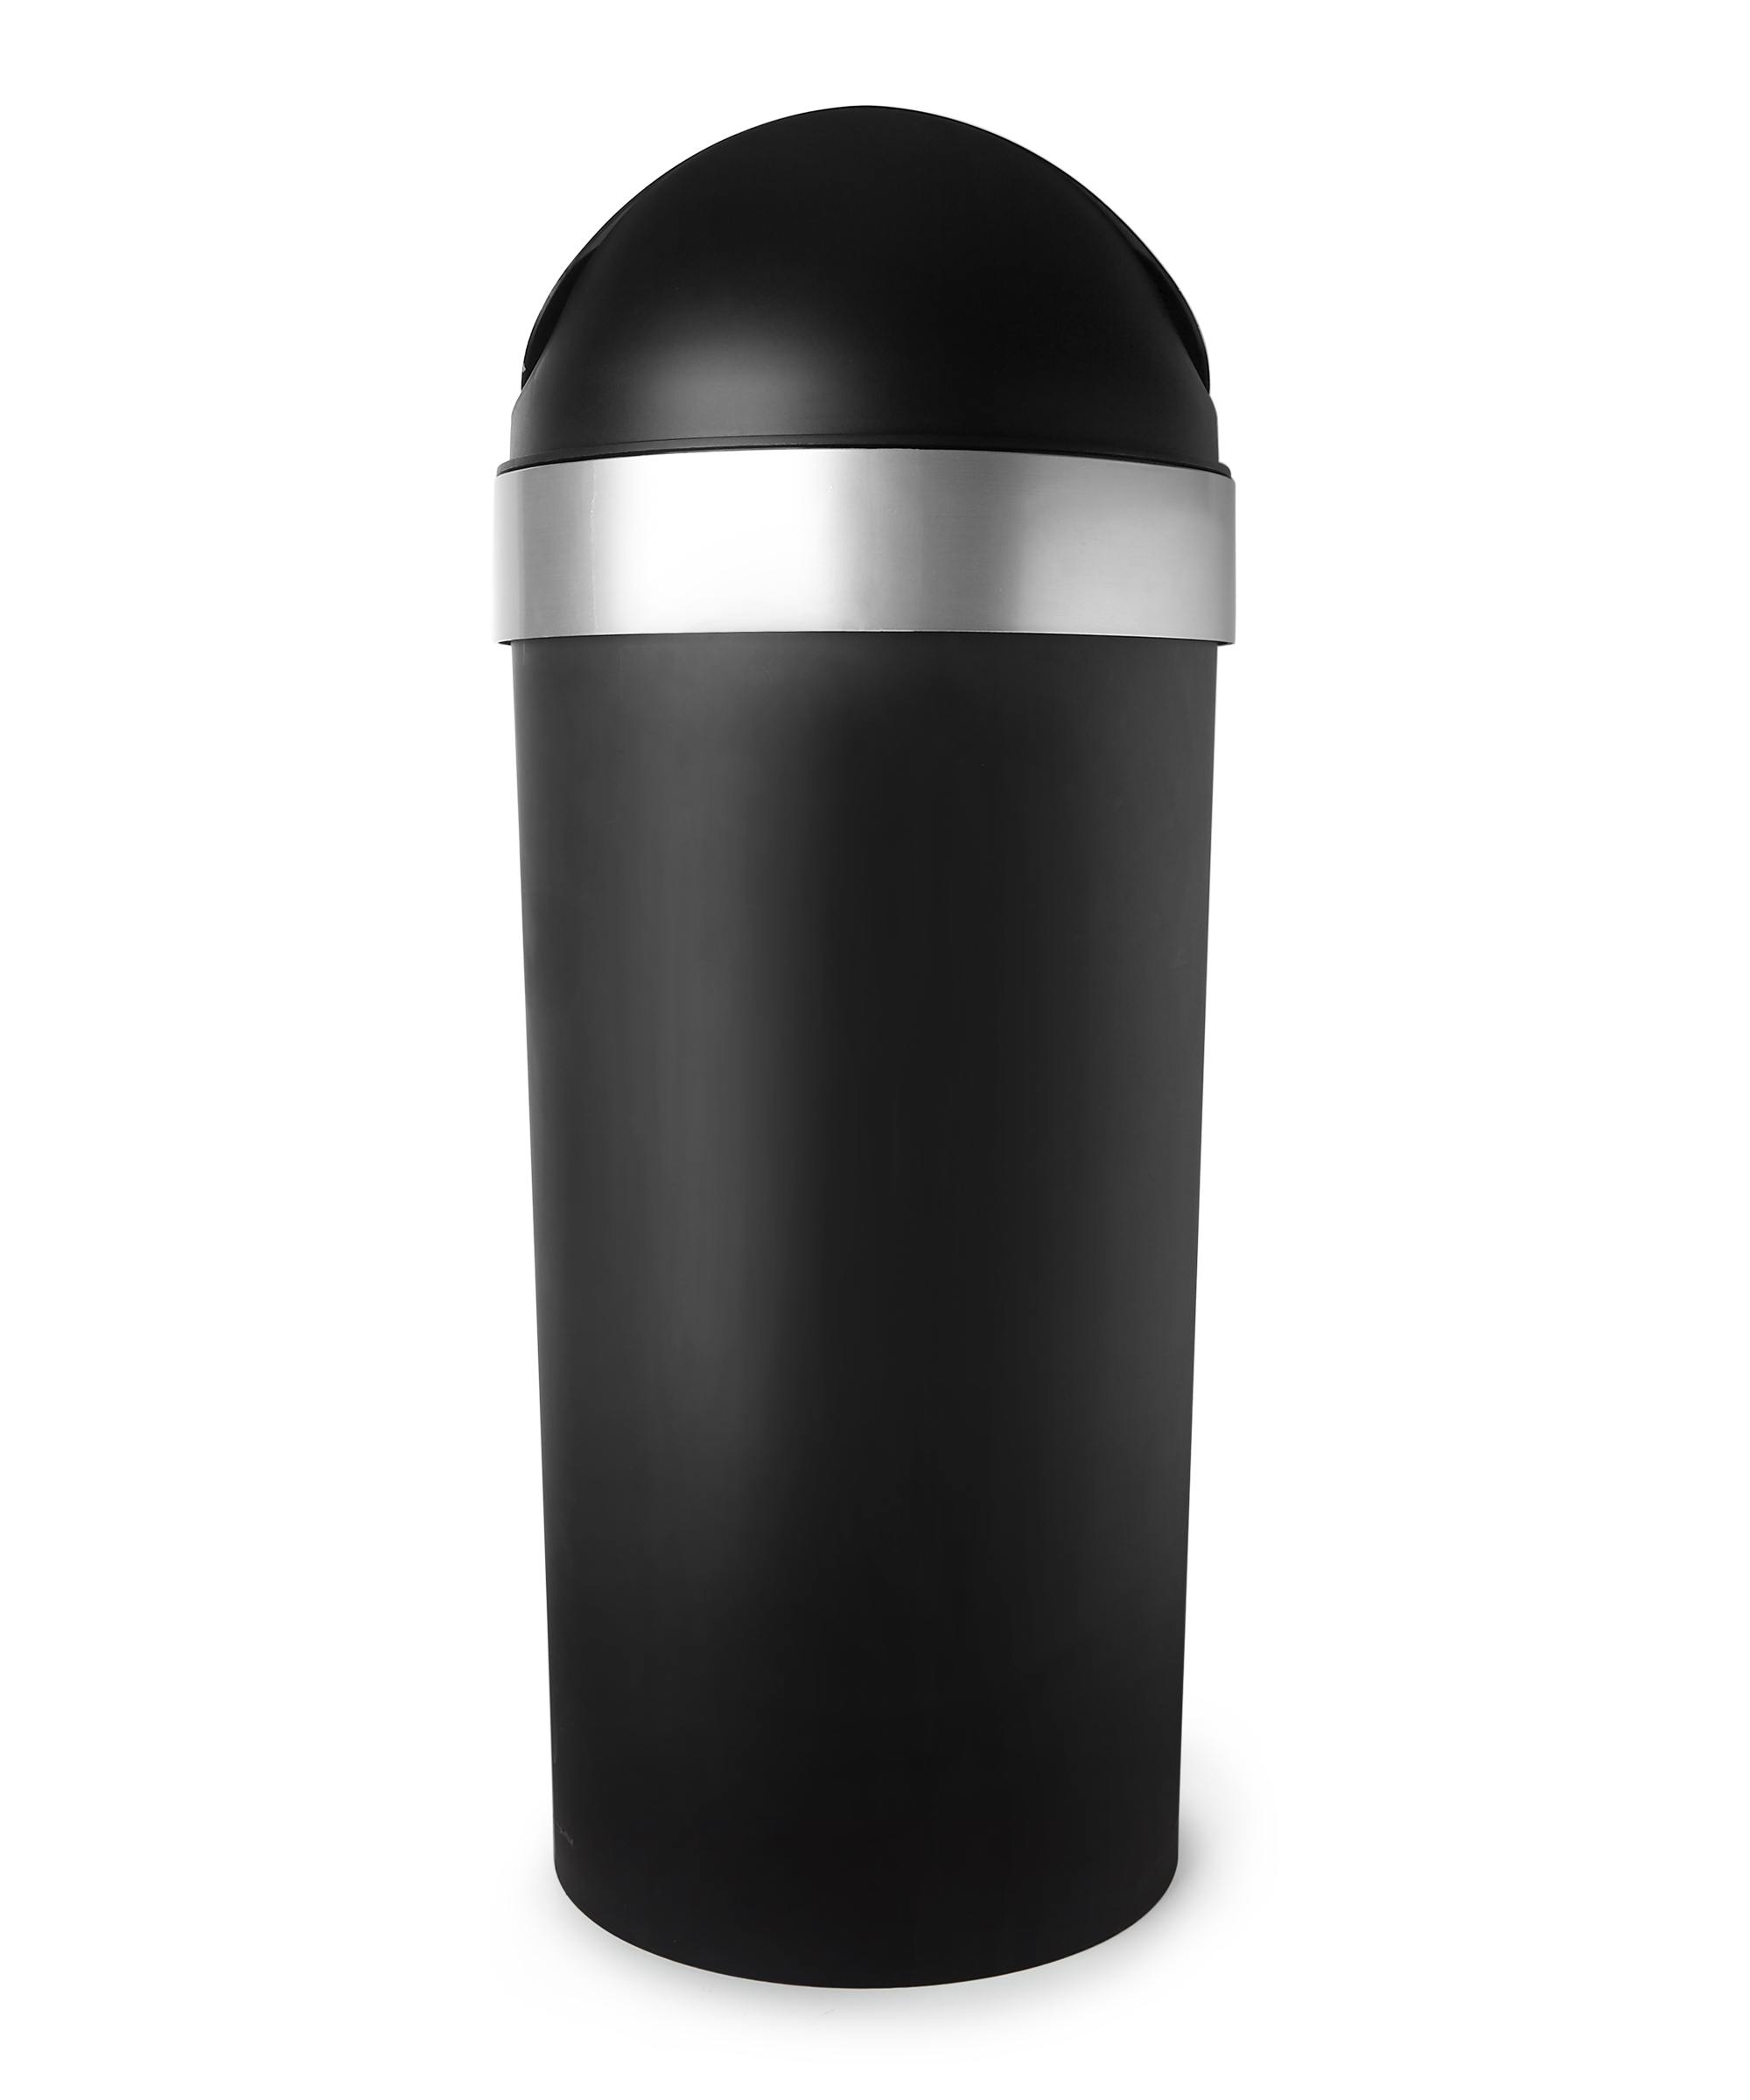 Umbra Venti 16 Gallon Swing Top Kitchen Trash Can Large 35 Inch